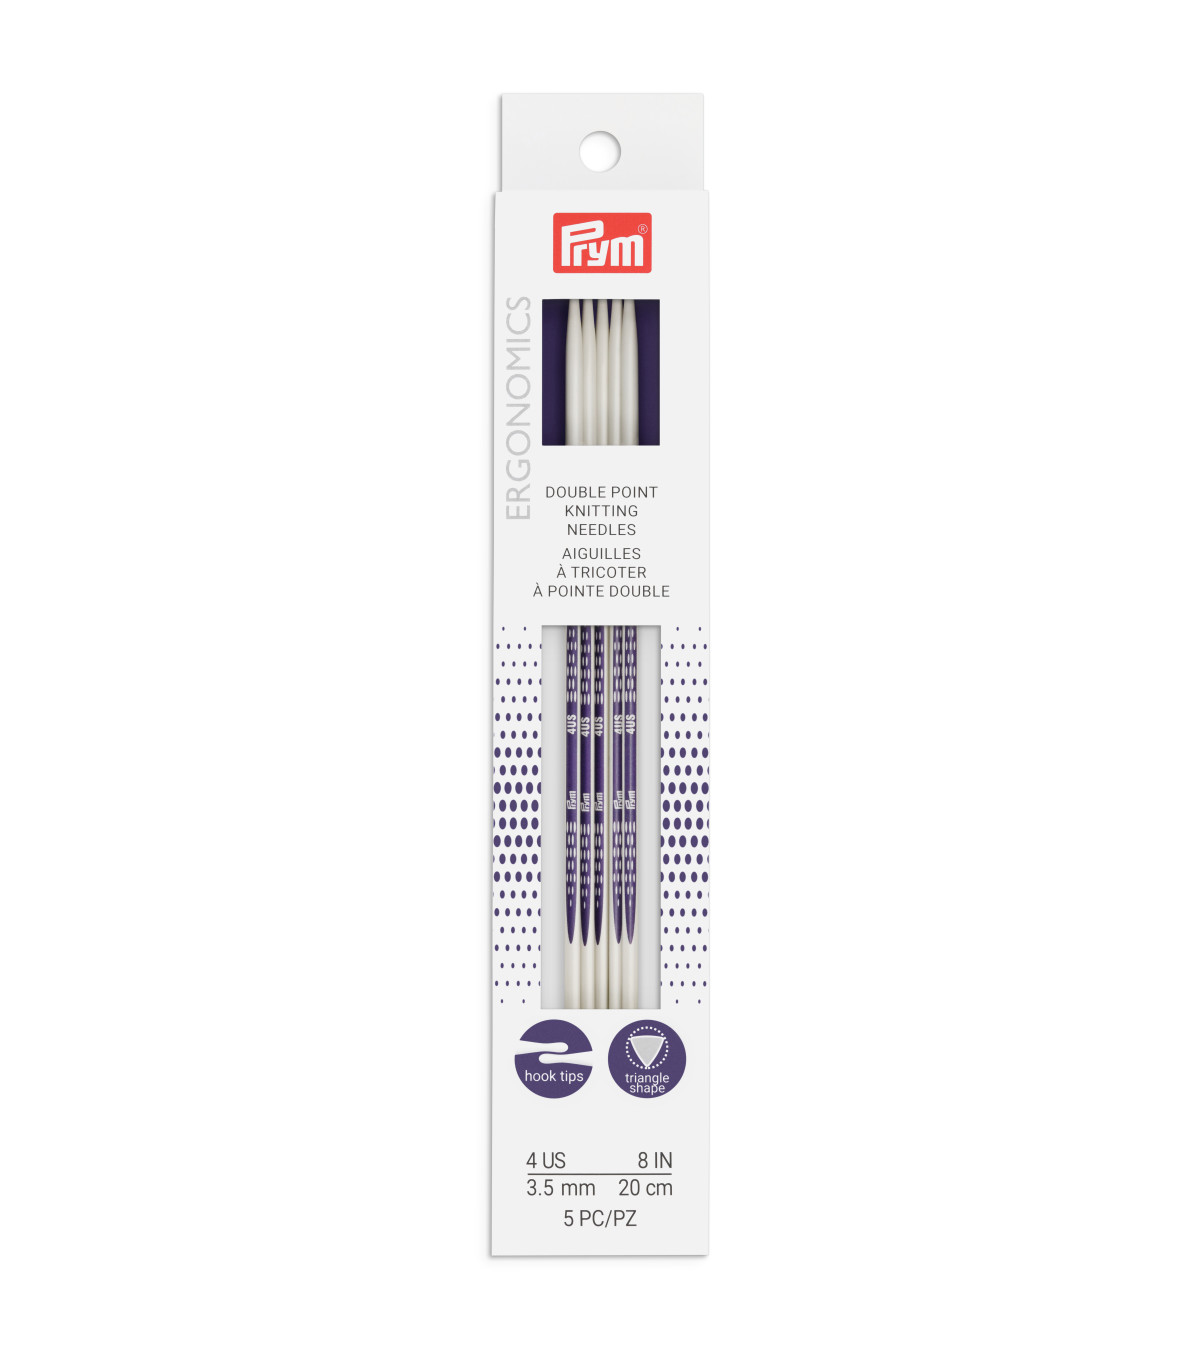 Prym Ergonomics 5 pk 8\u0027\u0027 Double Point Knitting Needles-Size 4